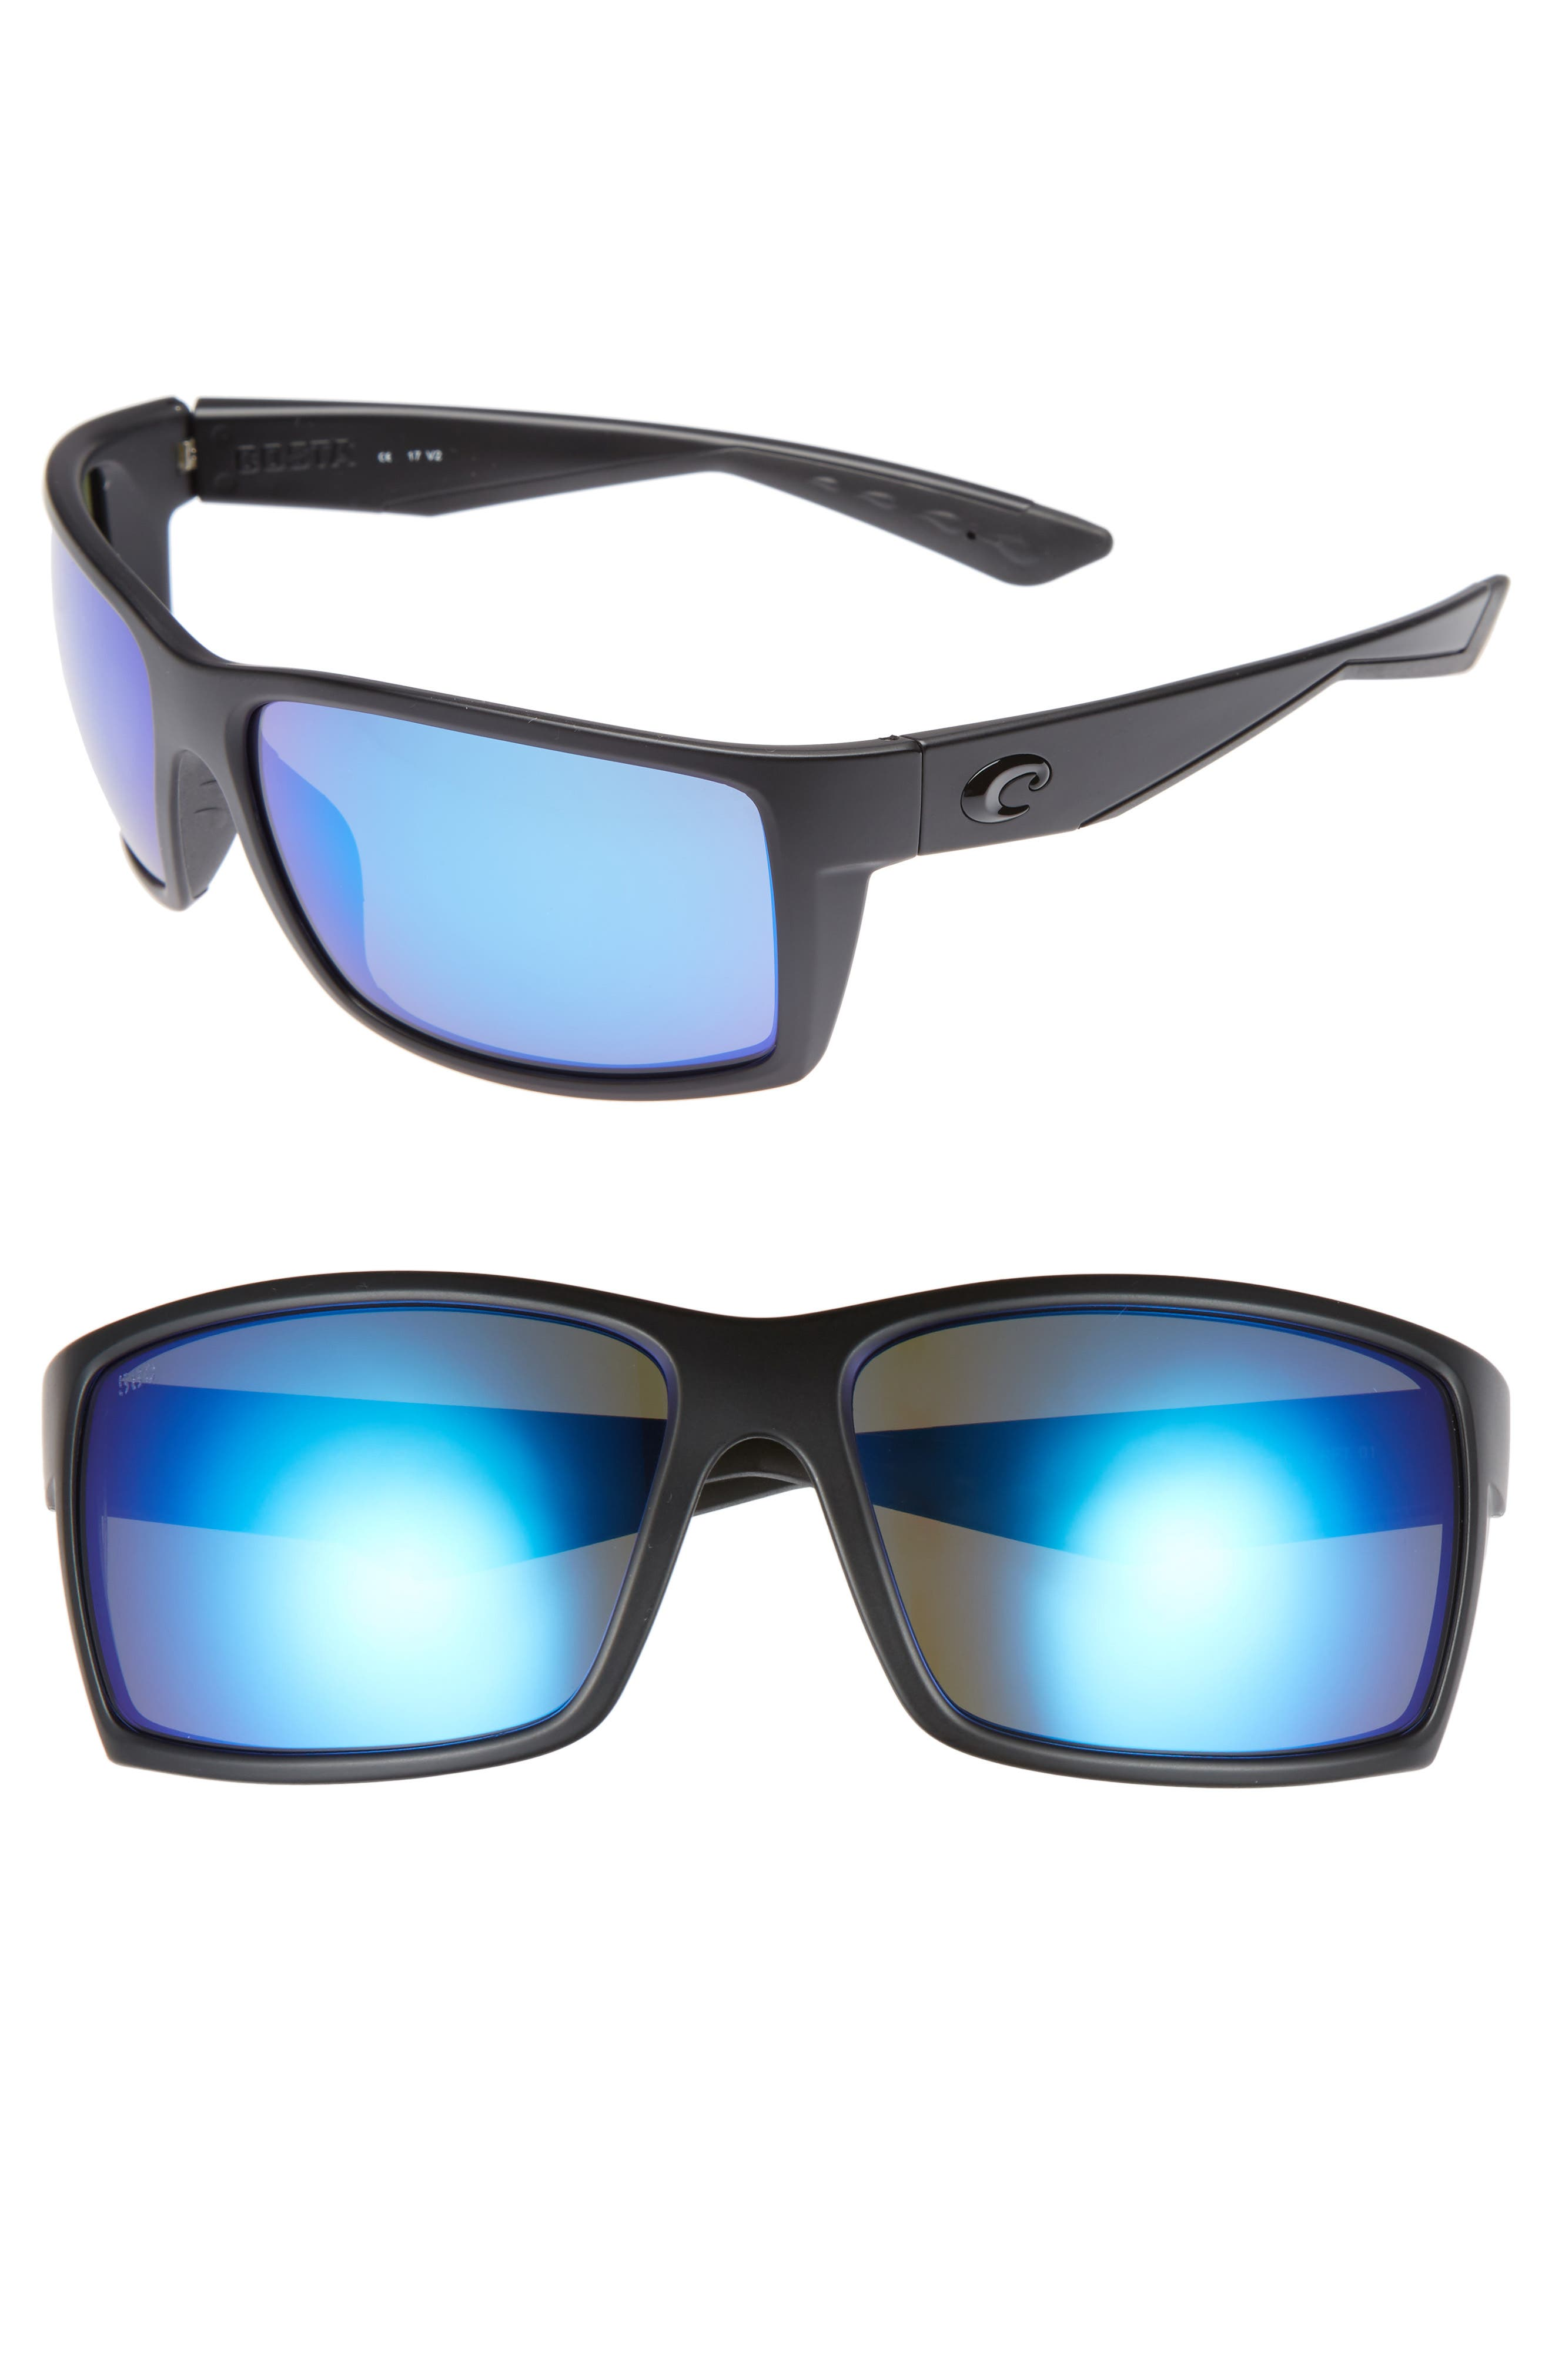 Reefton 65mm Polarized Sunglasses,                         Main,                         color, BLACKOUT/ BLUE MIRROR